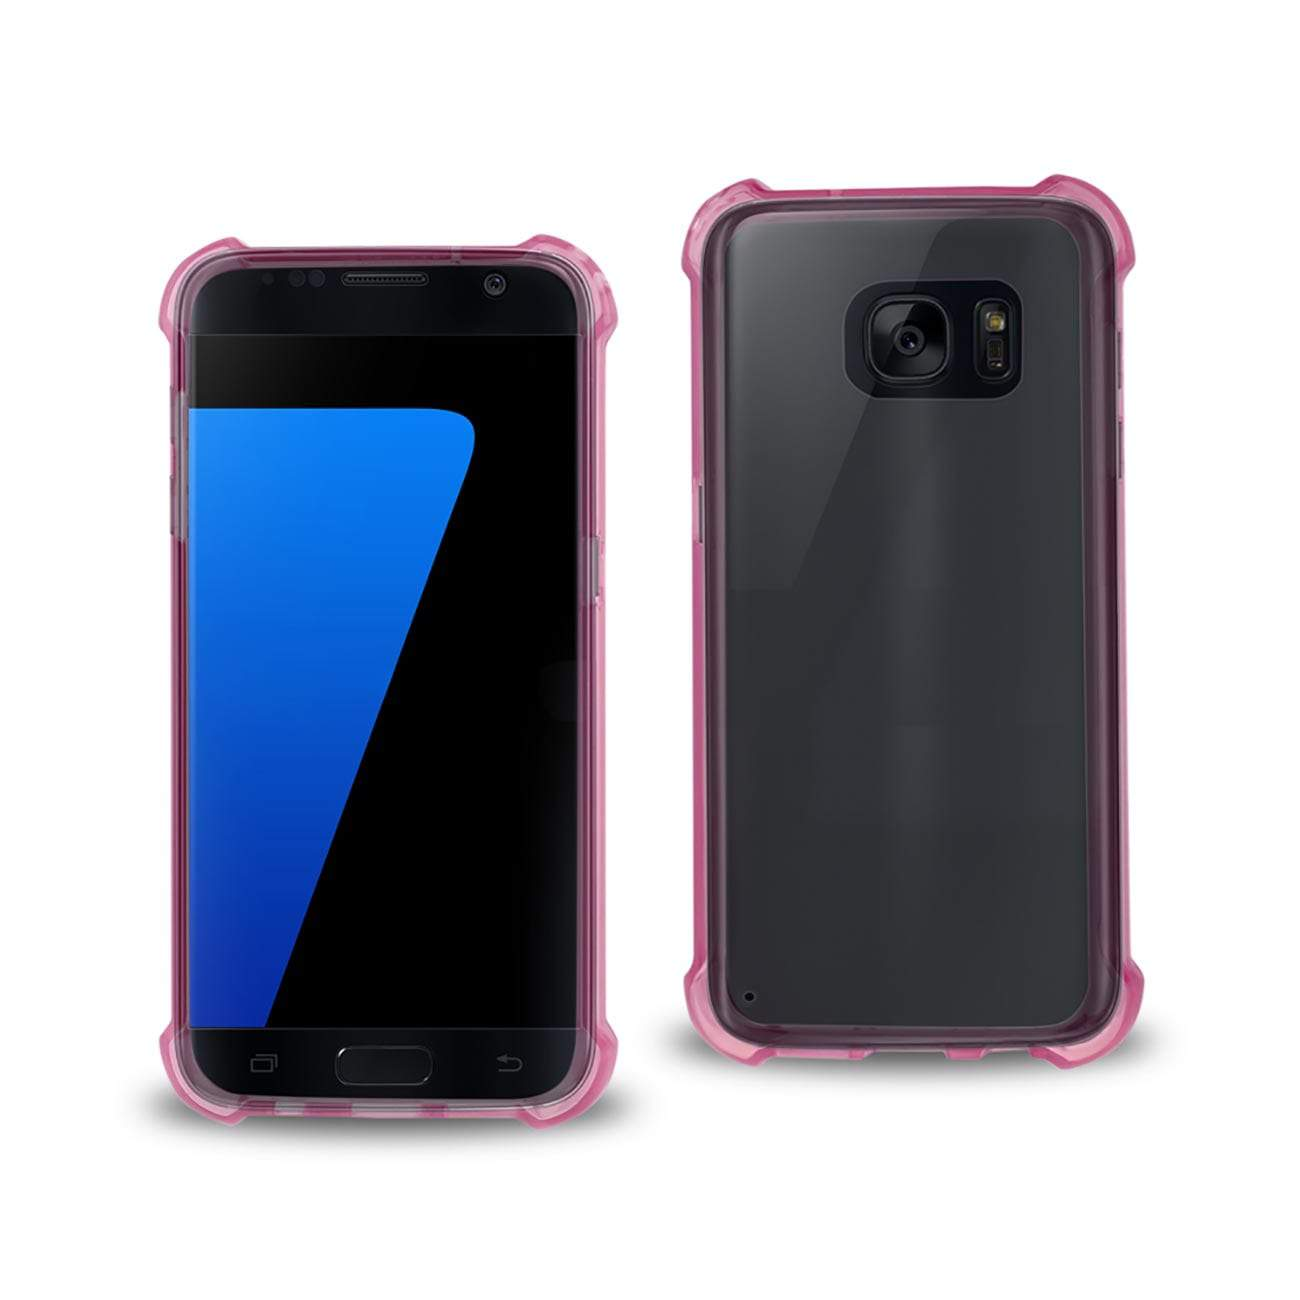 SAMSUNG GALAXY S7 CLEAR BUMPER CASE WITH AIR CUSHION PROTECTION IN CLEAR HOT PINK